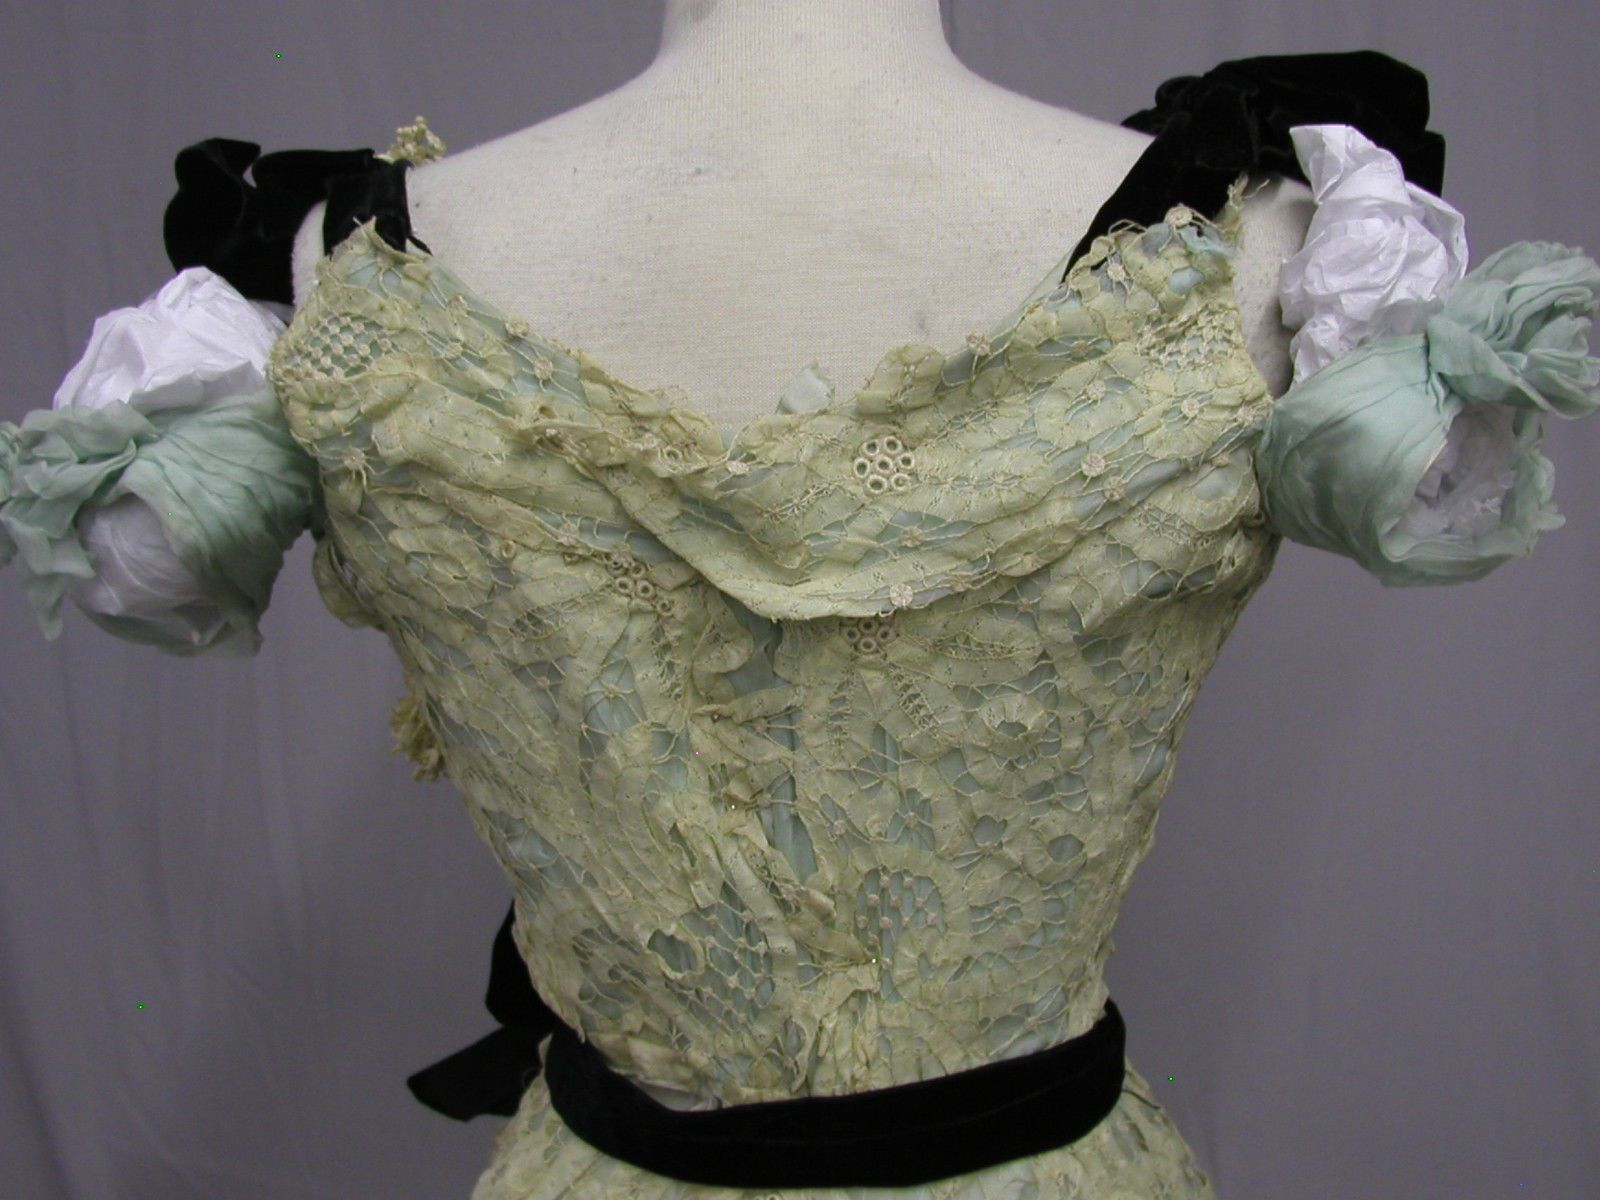 1900 Hand Made Lace & Aqua Silk Ball Gown: It was created at the turn of the 20th century, early 1900. Both shoulders are accented with heavy velvet bows. The hours to make a piece of lace like this by hand are stupendous. Detail